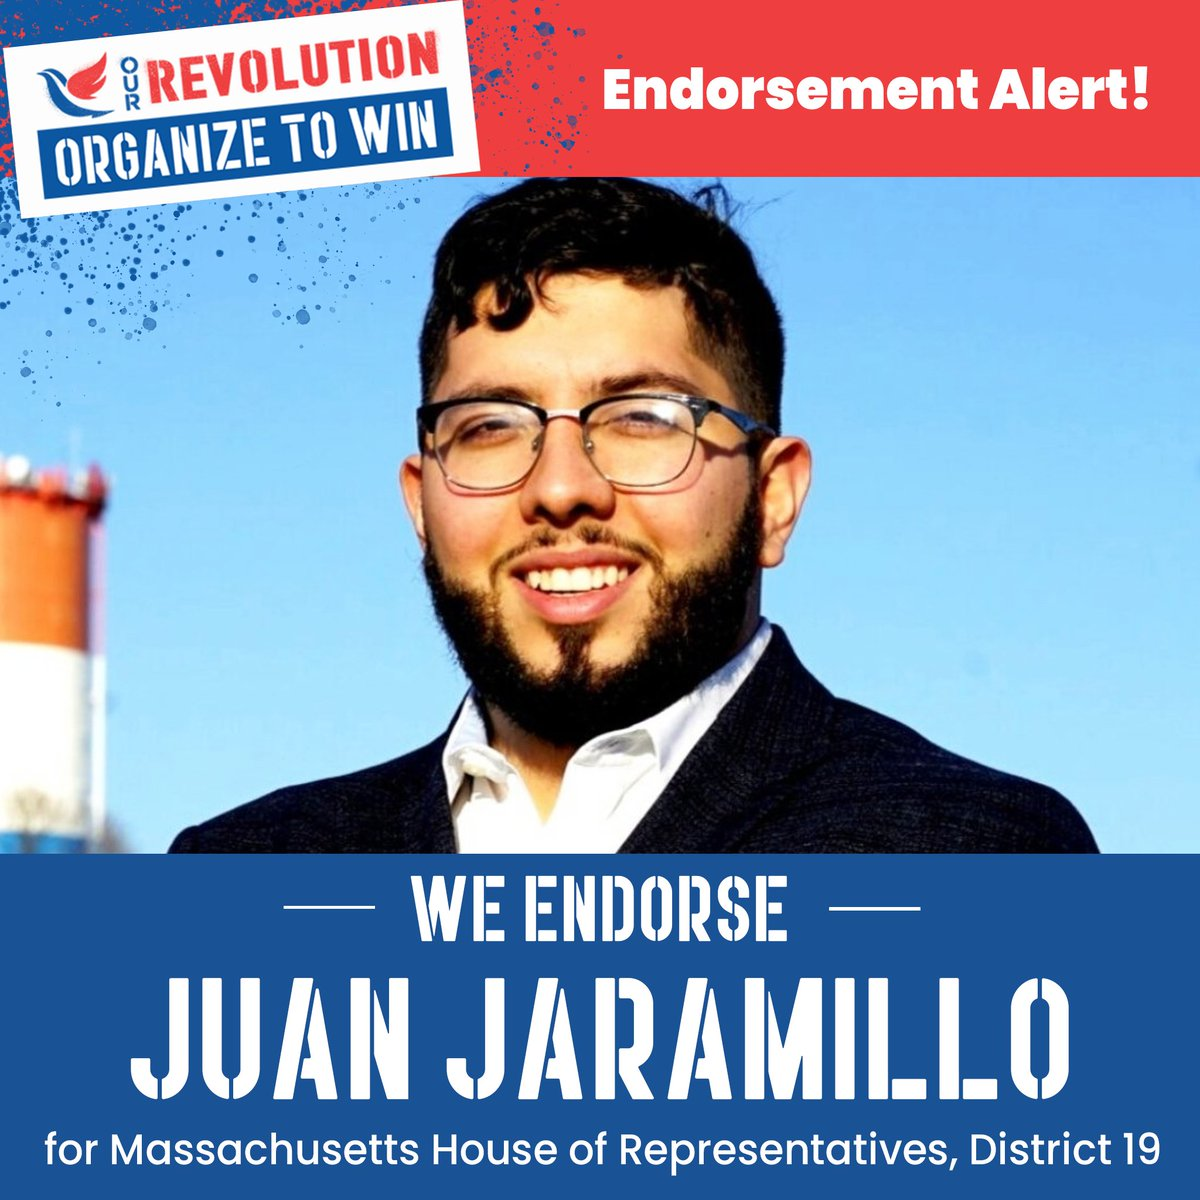 Election day is this Tuesday! Vote to elect @JuanForRep to the Massachusetts House of Representatives, District 19! He is fighting to hold polluters accountable & provide resources for mental health services, upgraded schools and affordable housing. #OurRevolution